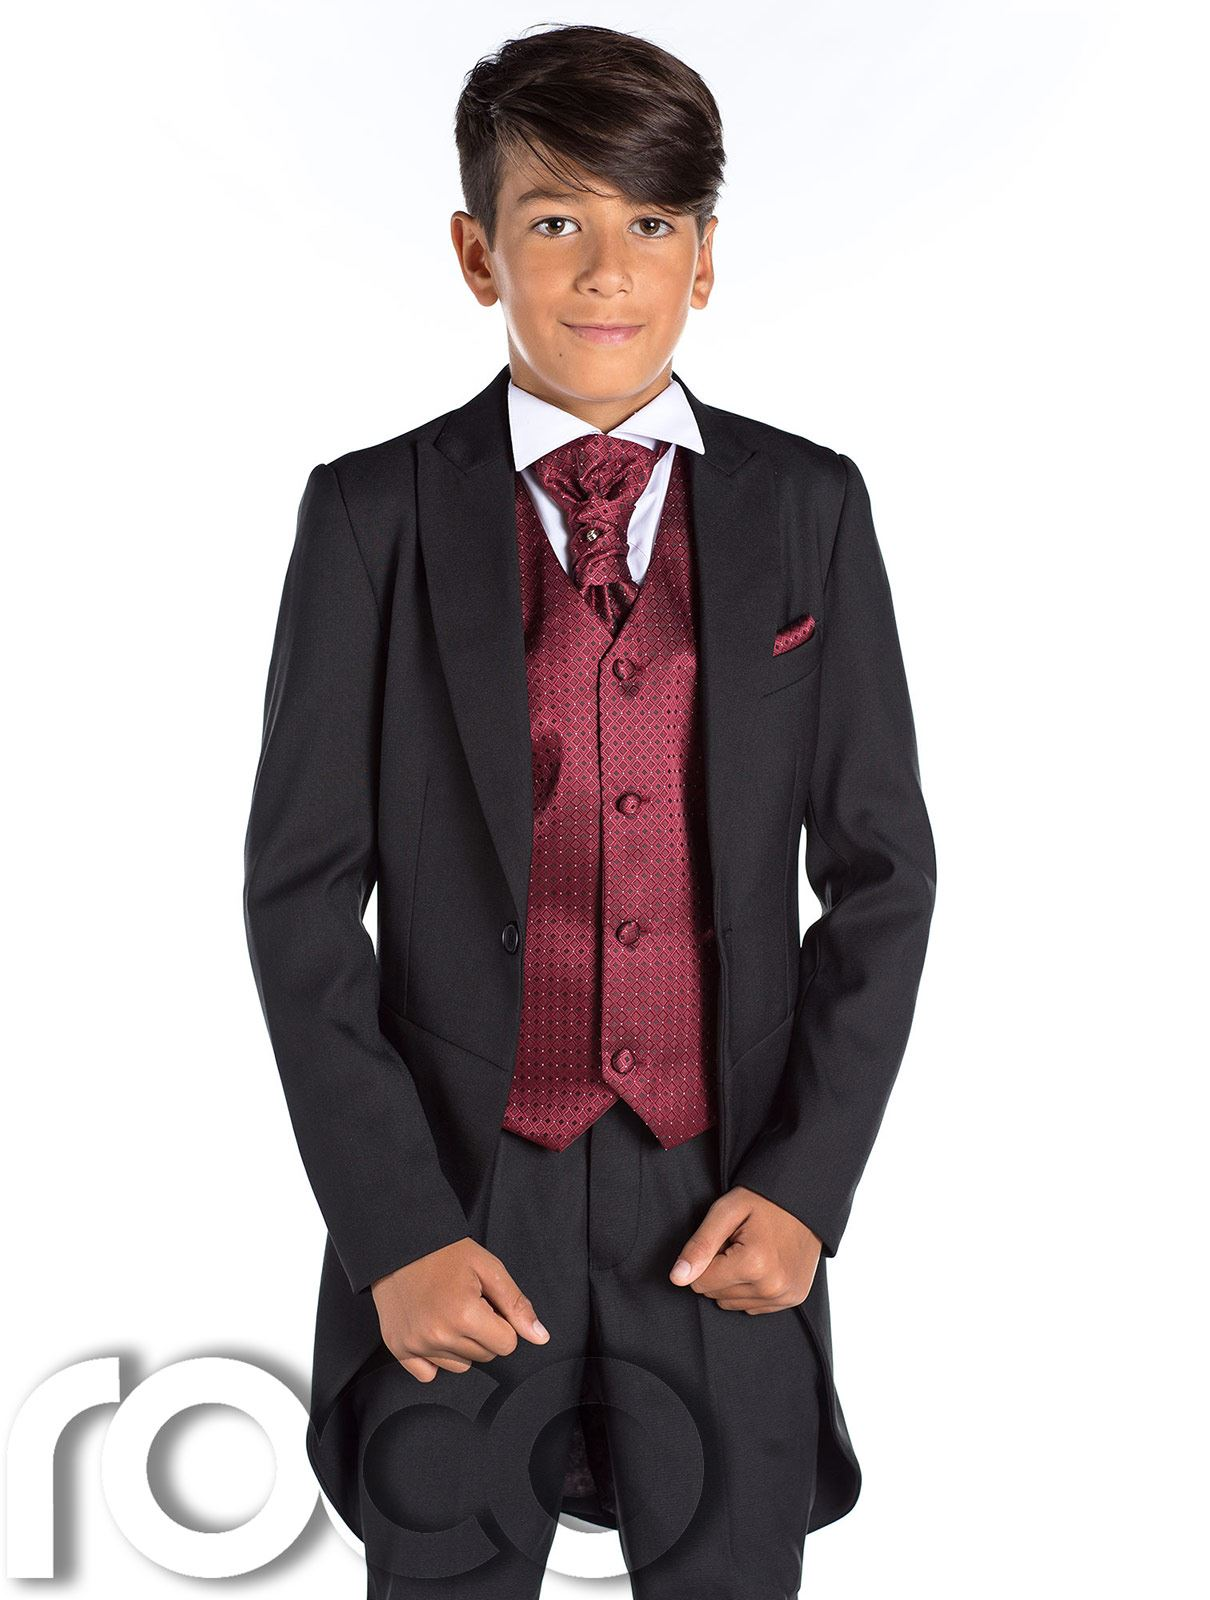 Boys Black Tail Suit, Prom Suit, Page Boy Suit, Boys Black Suit ...